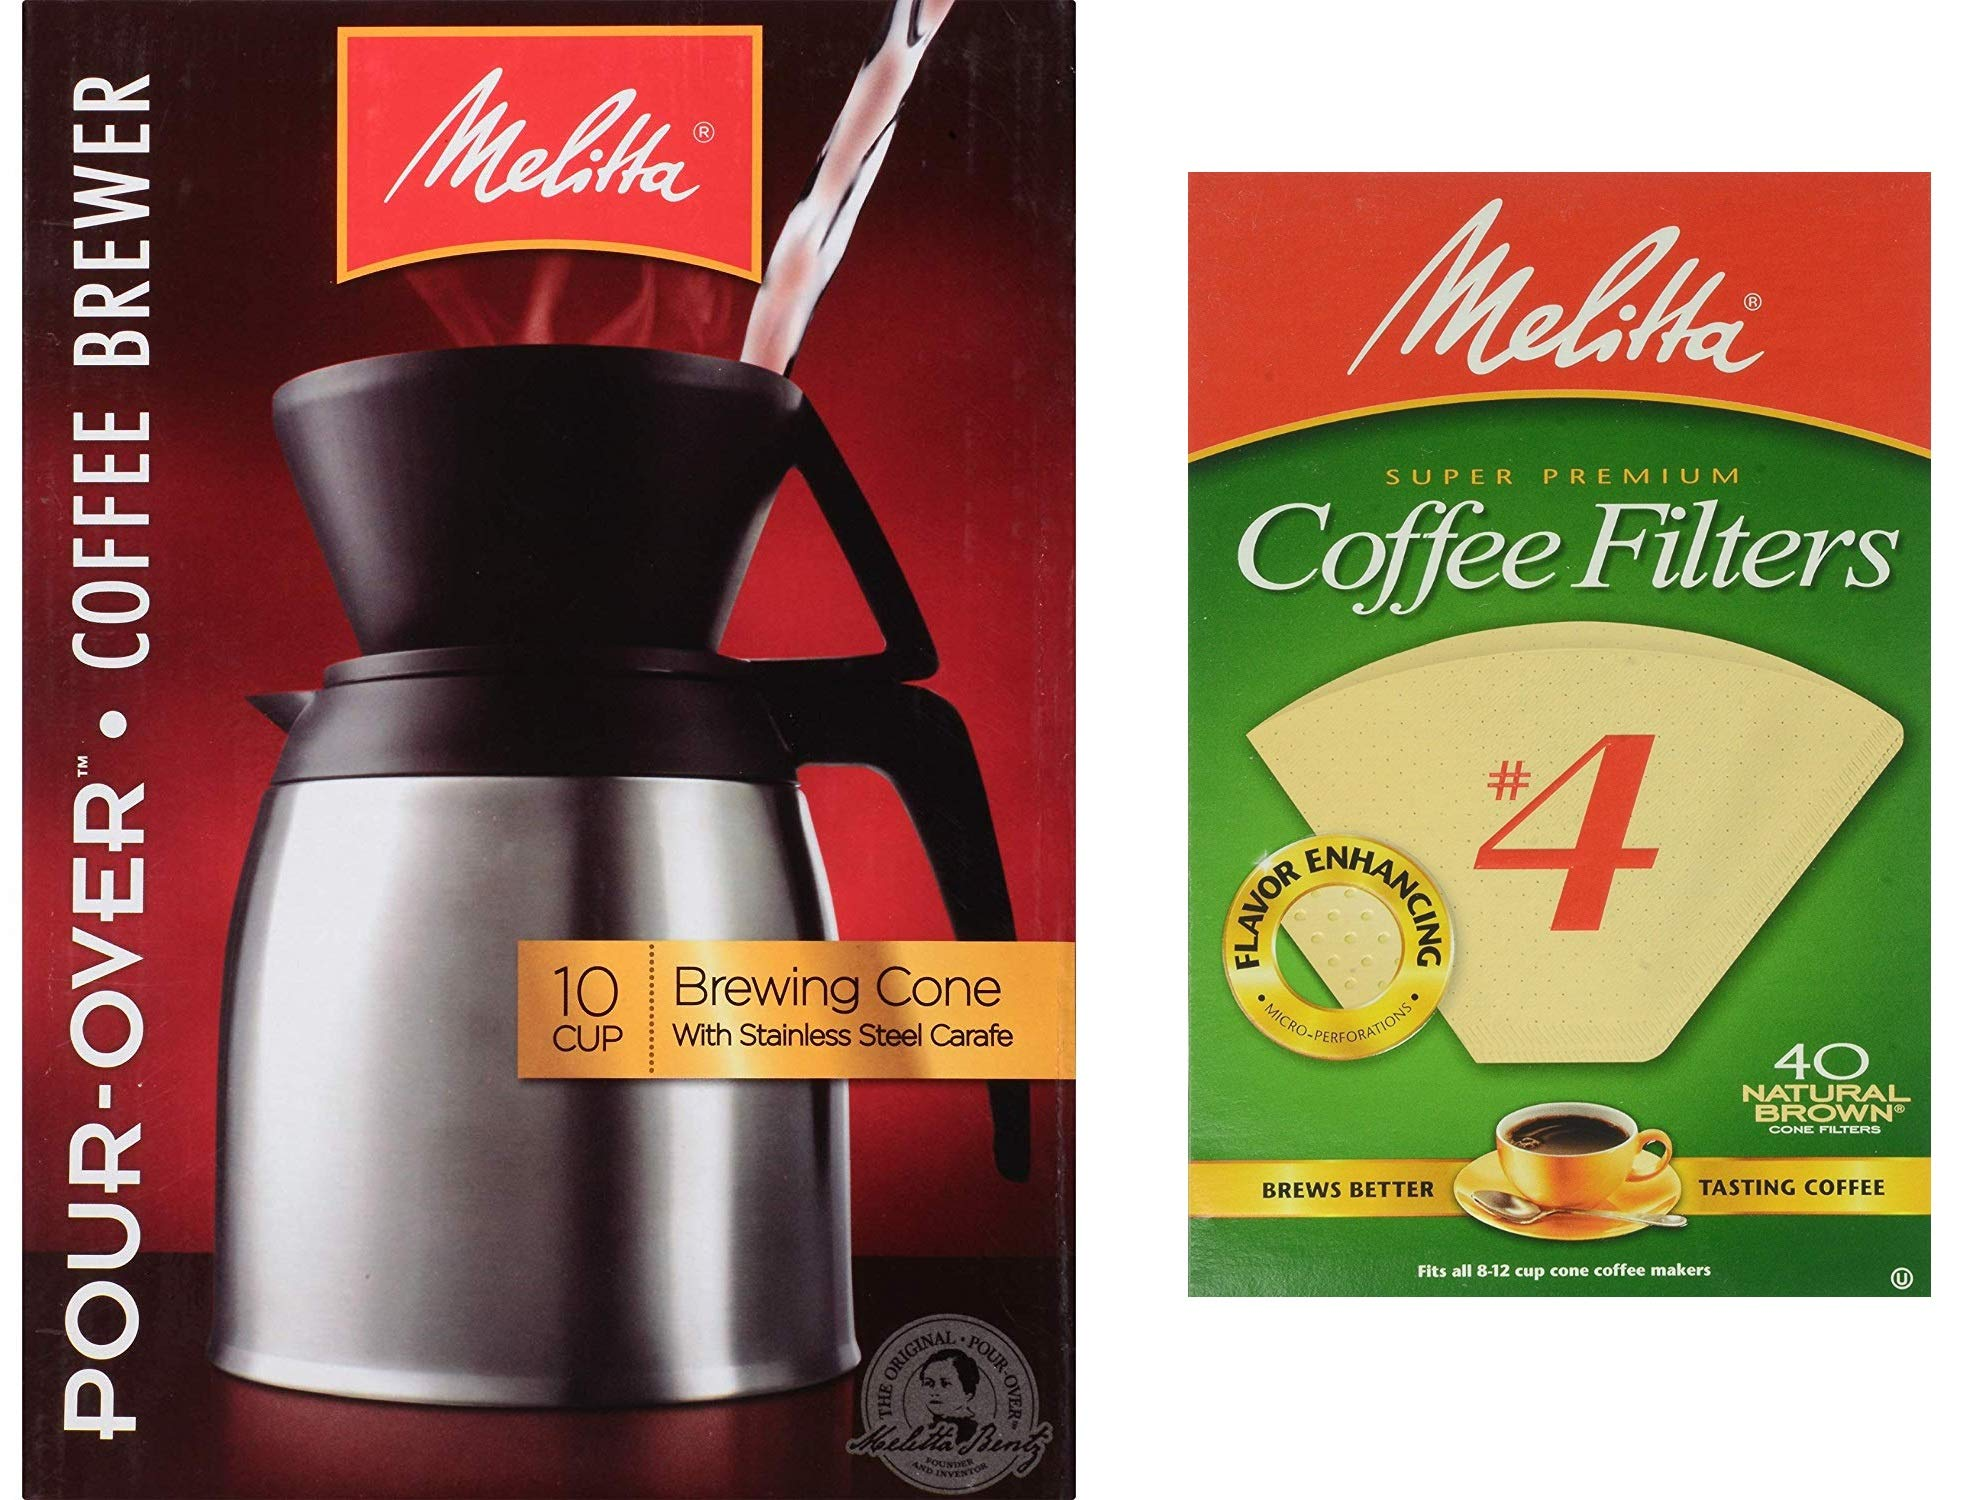 Melitta Thermal Carafe 10-Cup Pour-Over Coffee Brewer with 40 Extra #4 Natural Brown Cone Filters by Taradactile